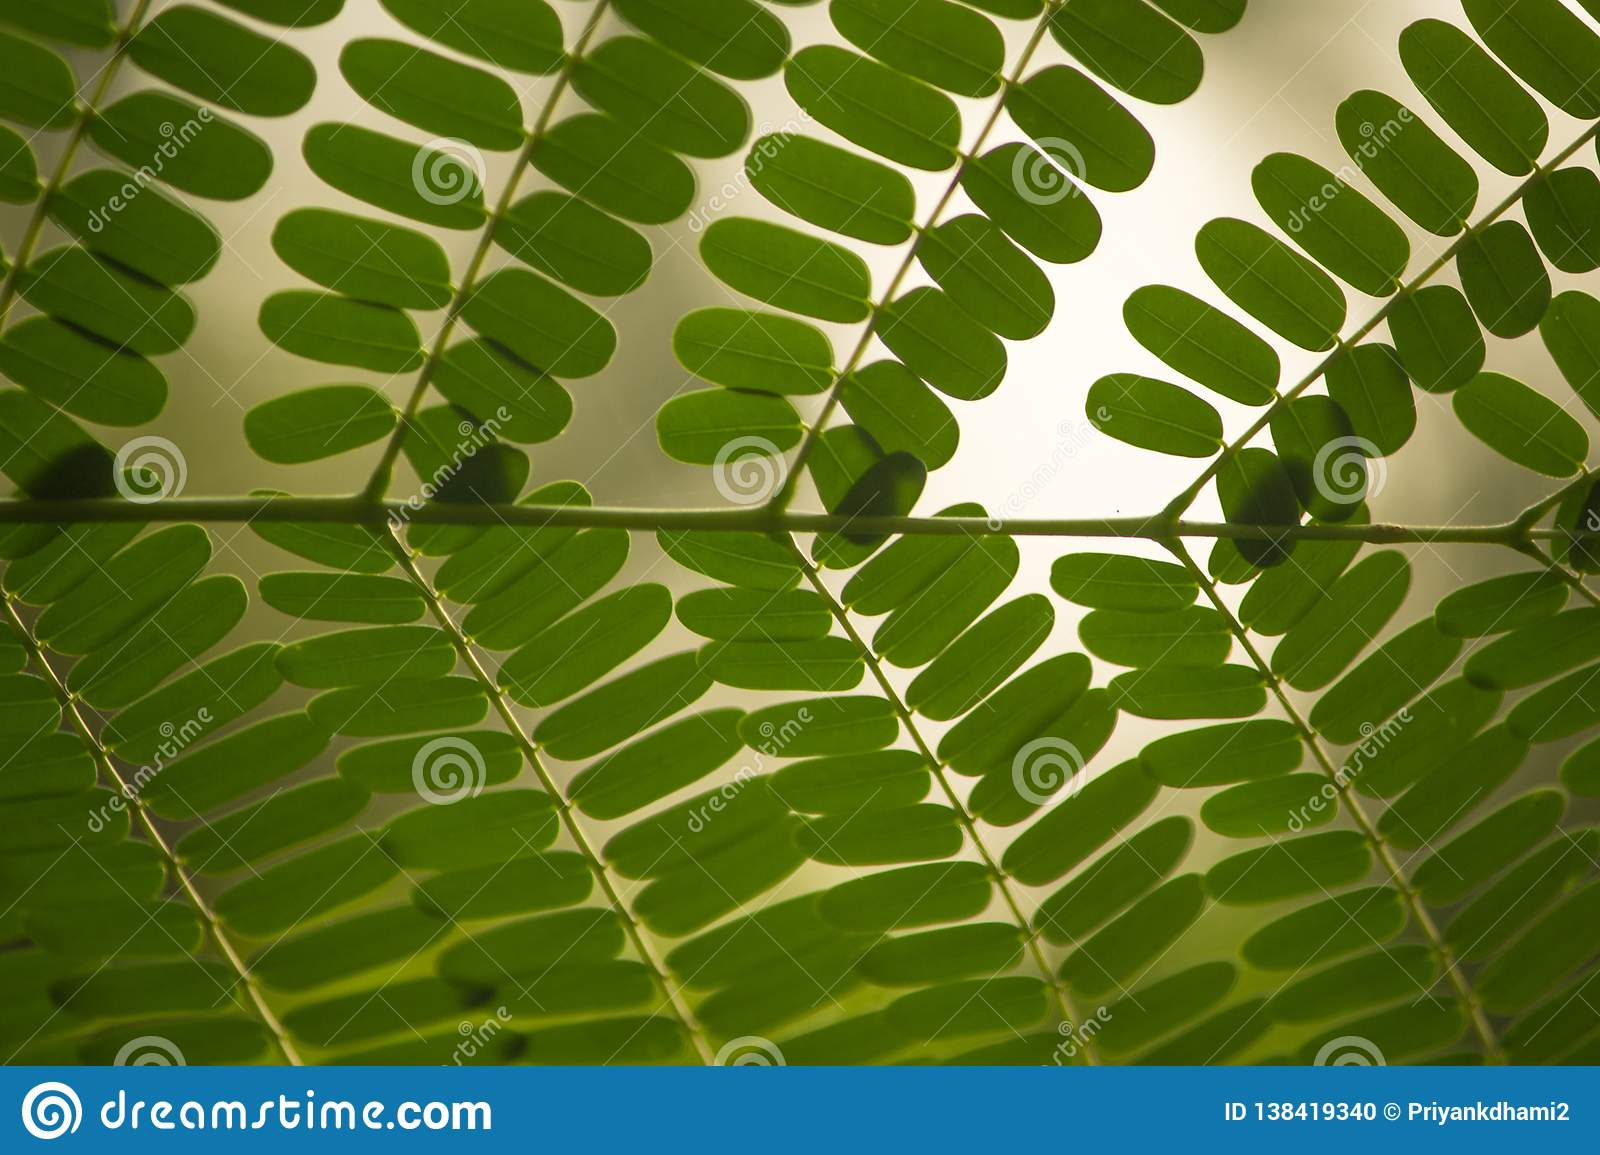 A Beautiful Green Color Leaf Pattern With Green Background